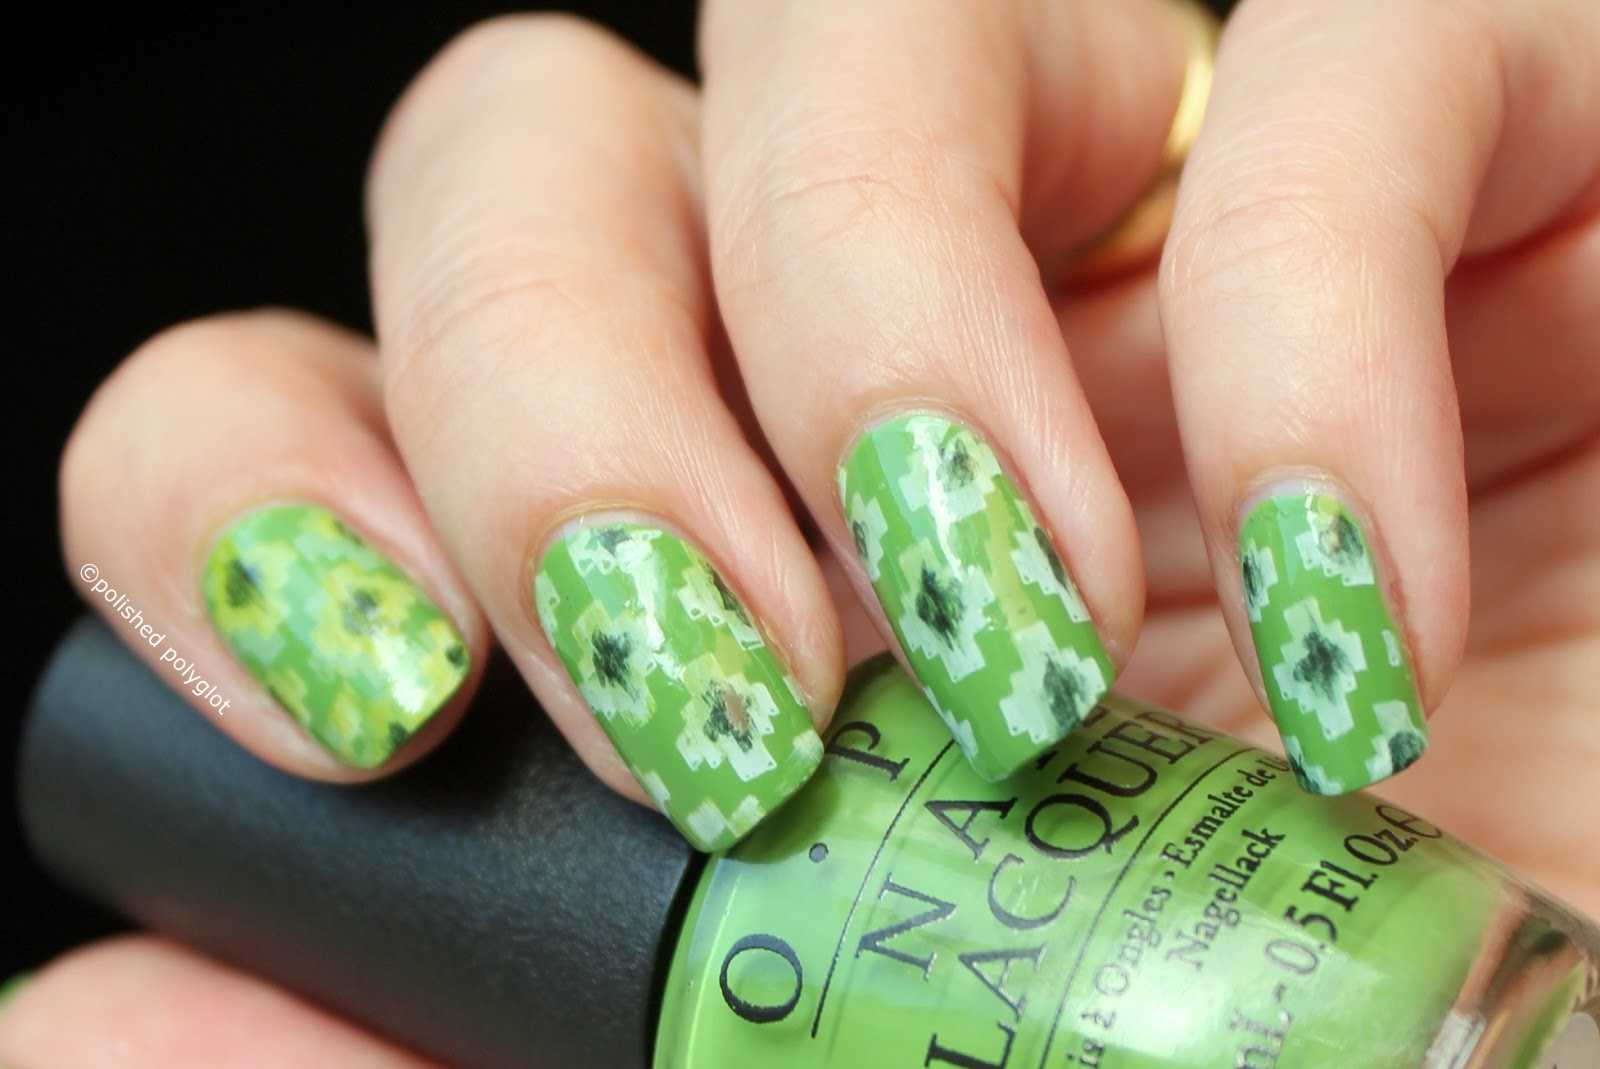 18 Cool Green Nail Art Ideas in Different Shades - Style Motivation